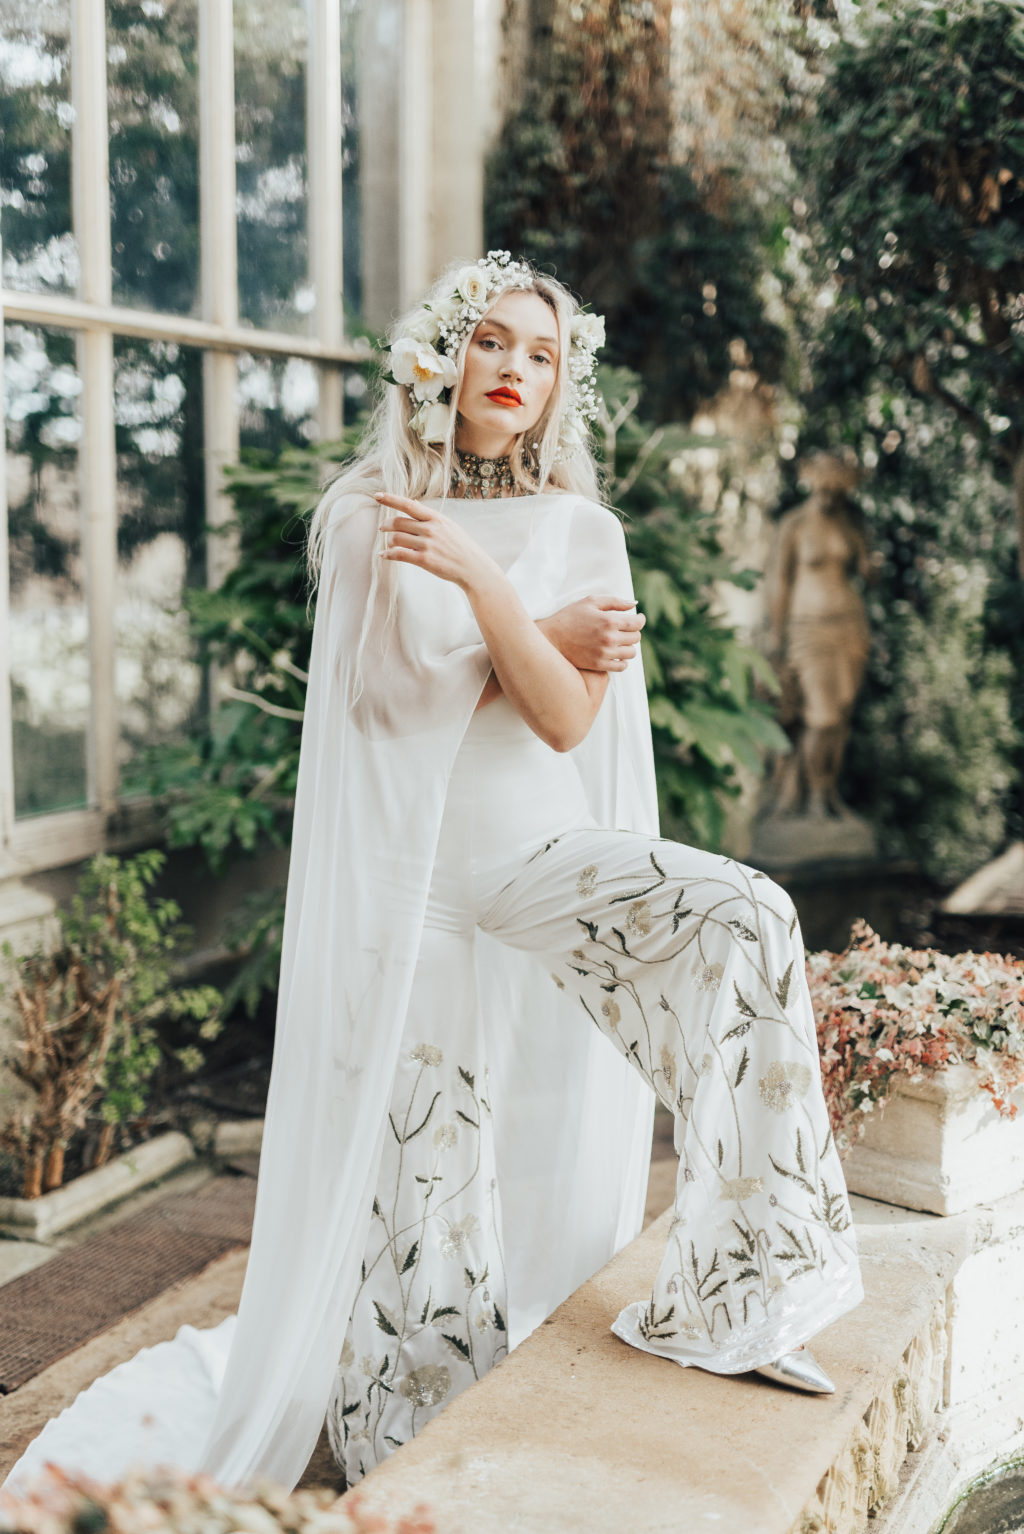 Ethical Wedding Dresses by Bowen Dryden: The 'Rebel Rose' Collection